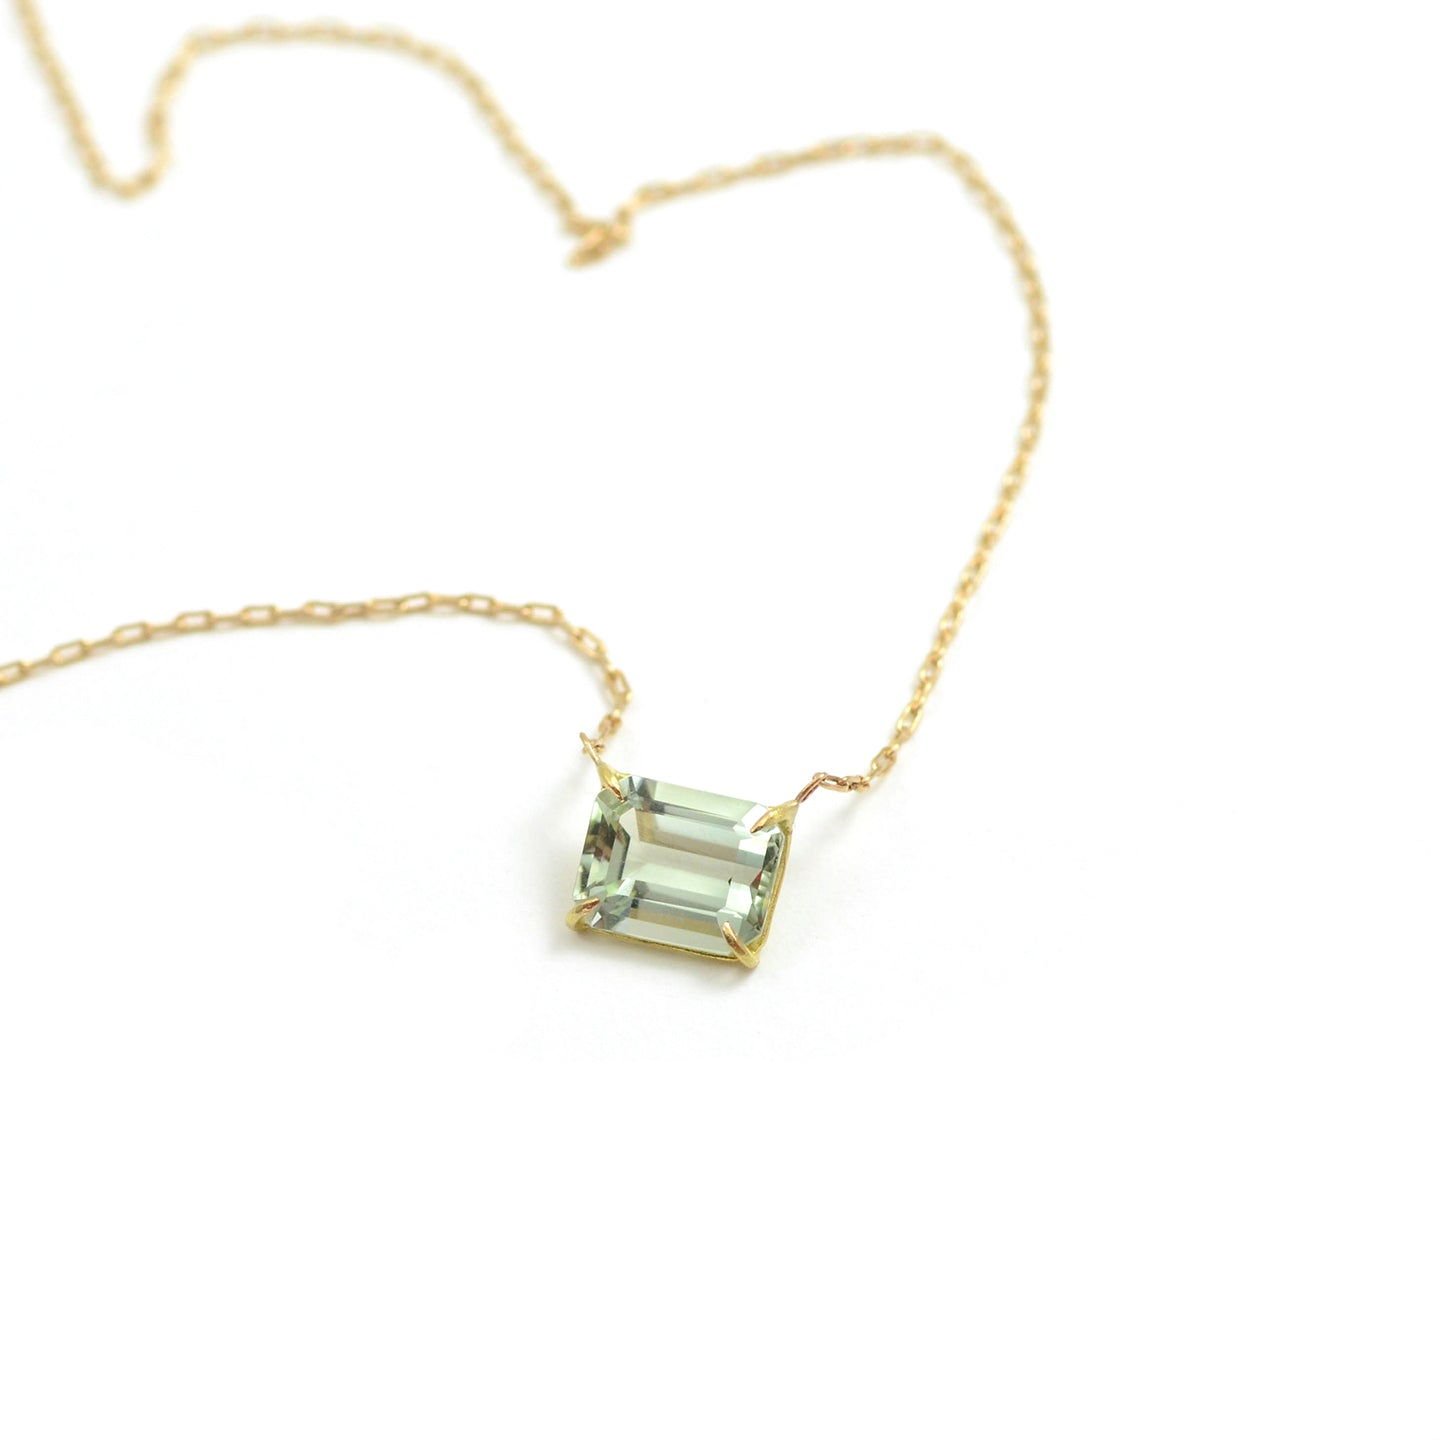 Rosanne Pugliese Necklace with emerald cut east west green amethyst or prasiolite